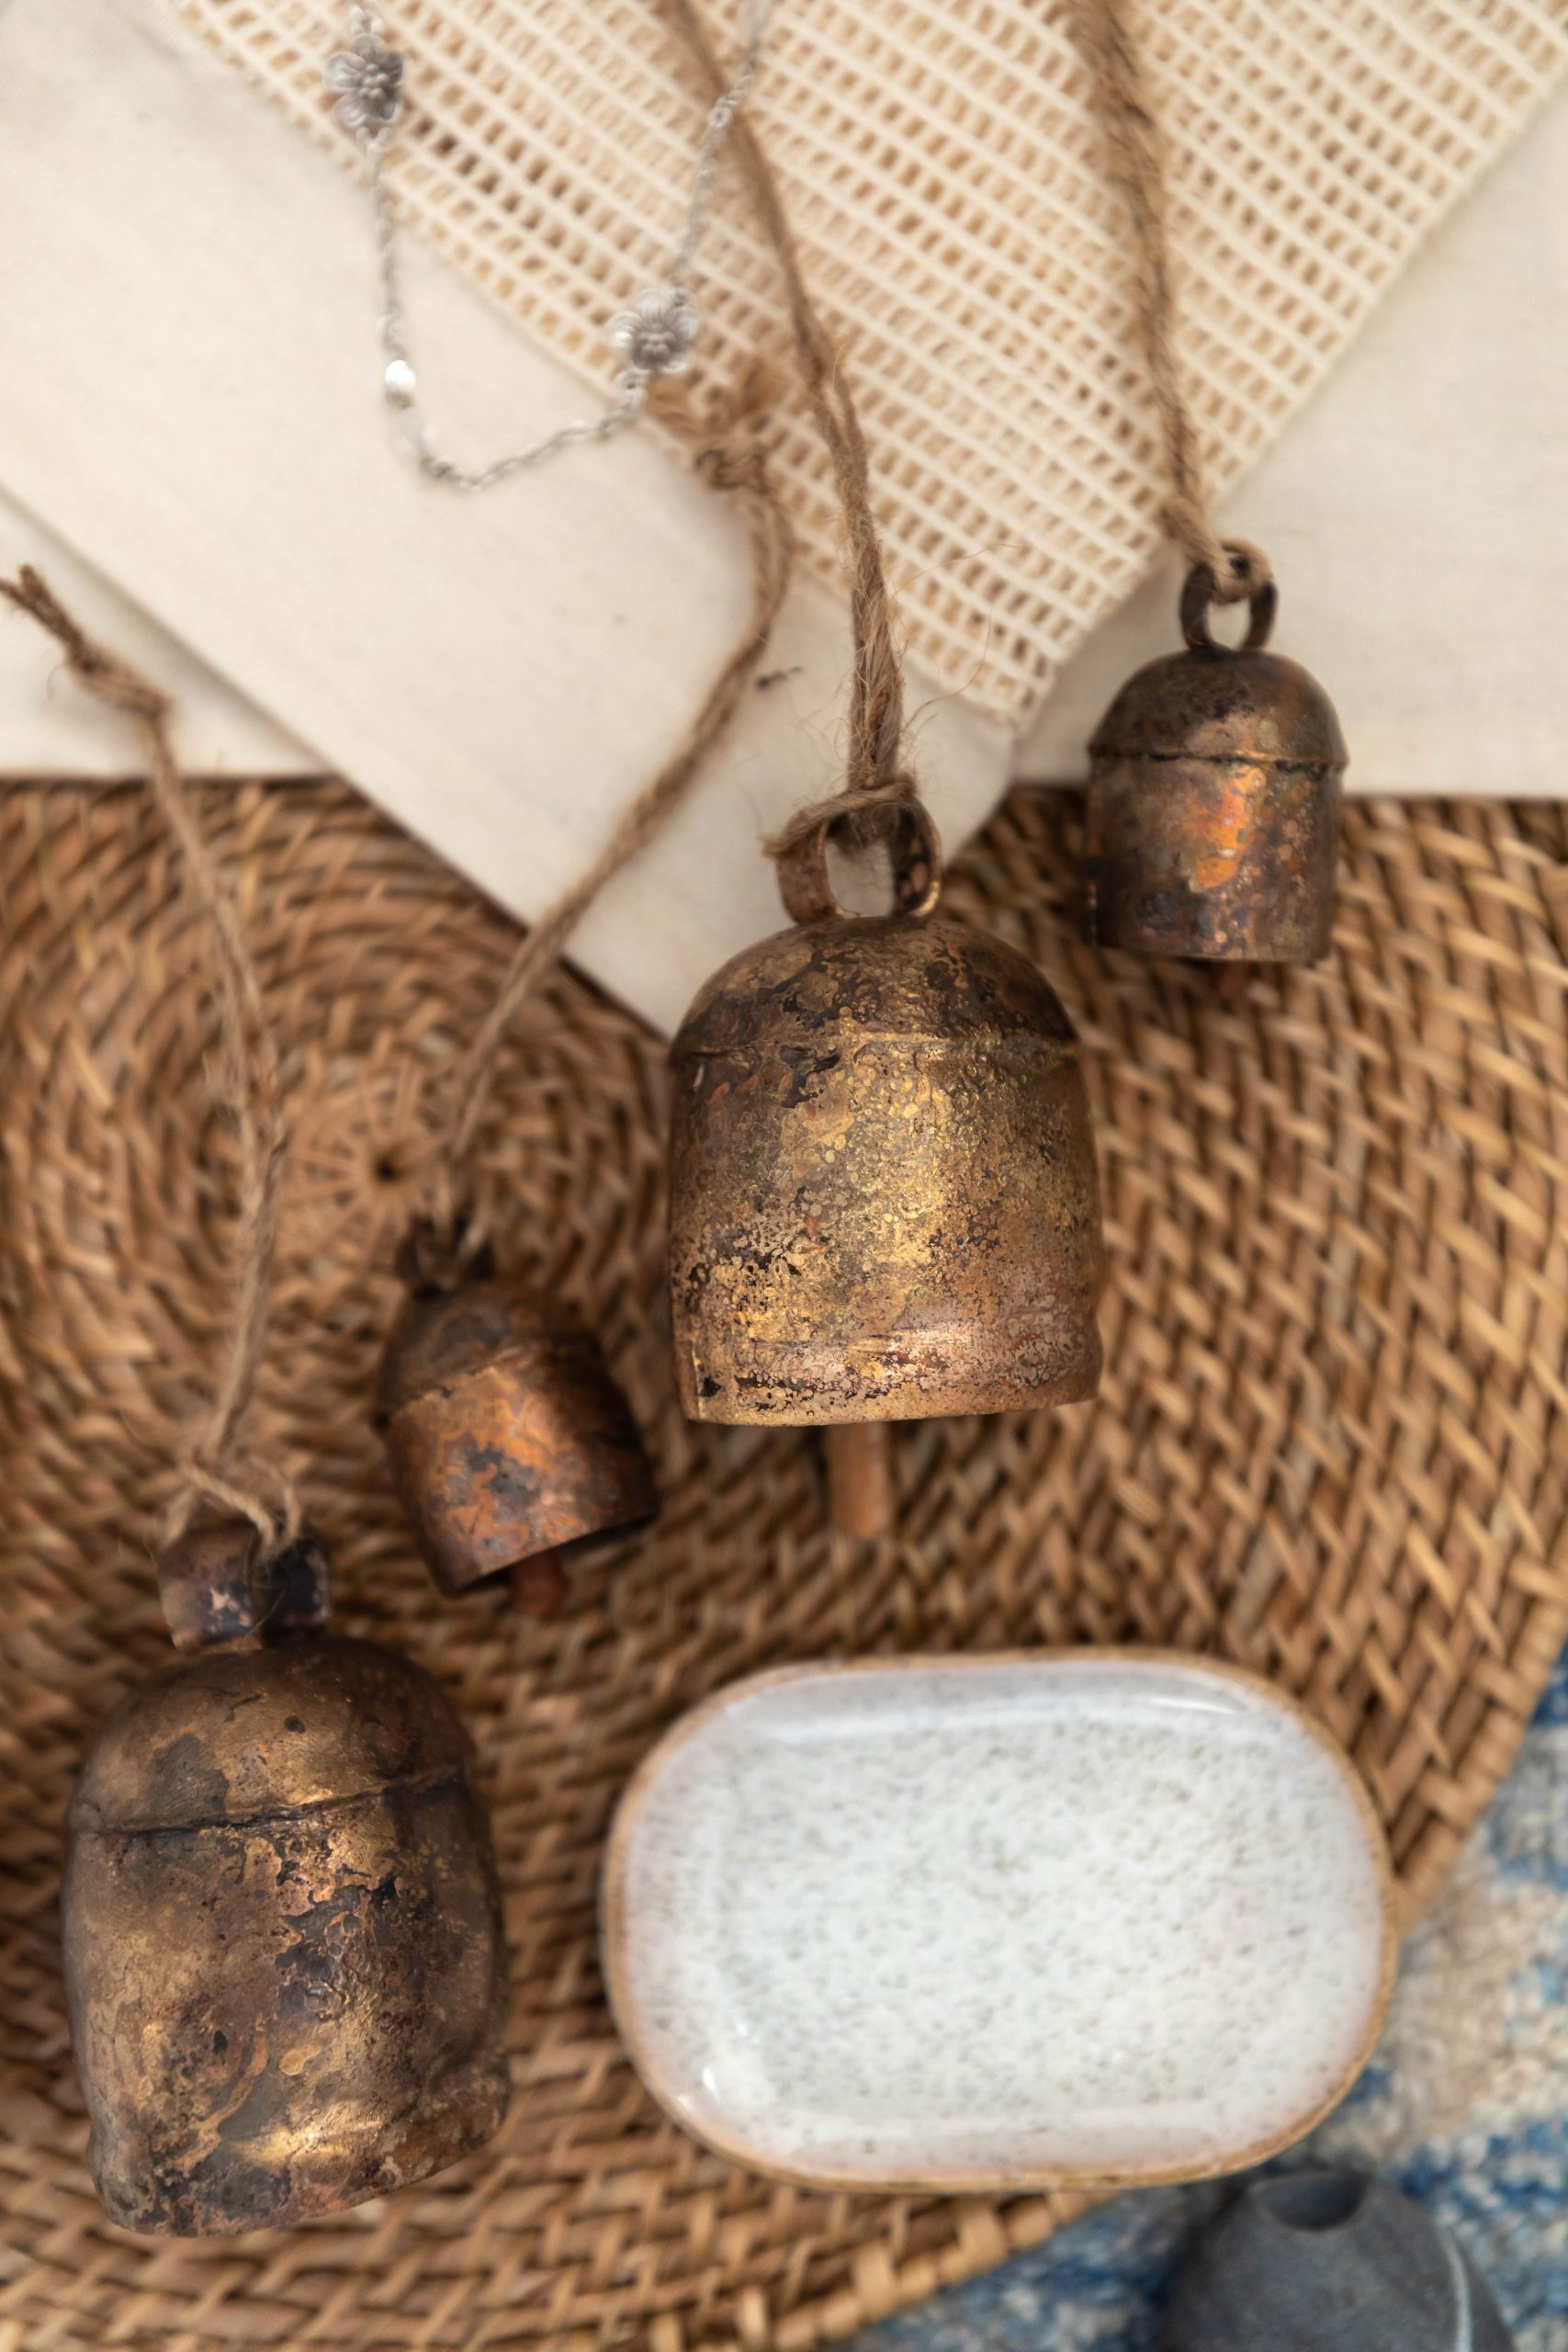 Handmade in India NM Nana Bells Recent Acquisitions from Northern Michigan Small Businesses by Annie Fairfax